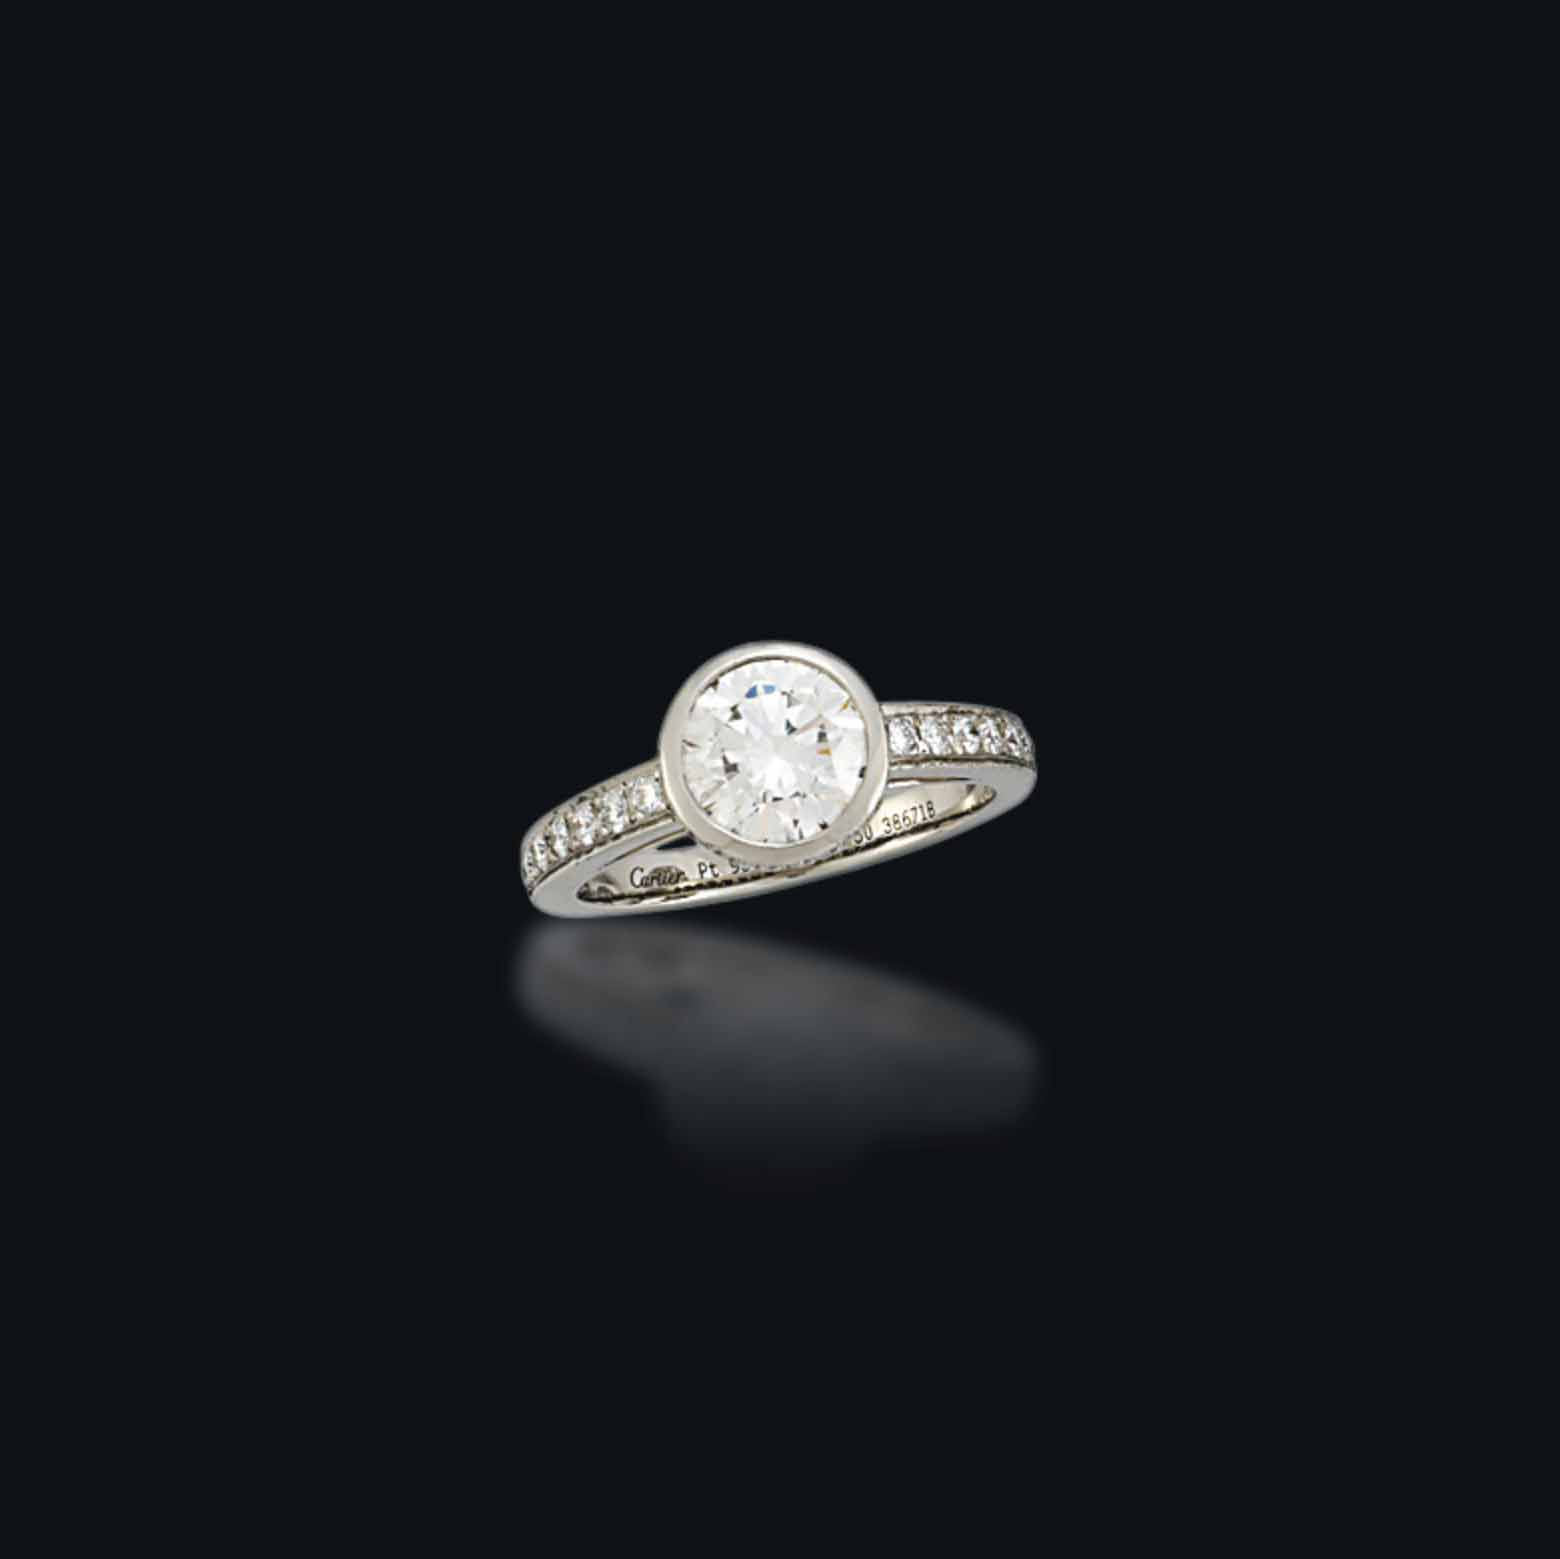 A DIAMOND RING, BY CARTIER